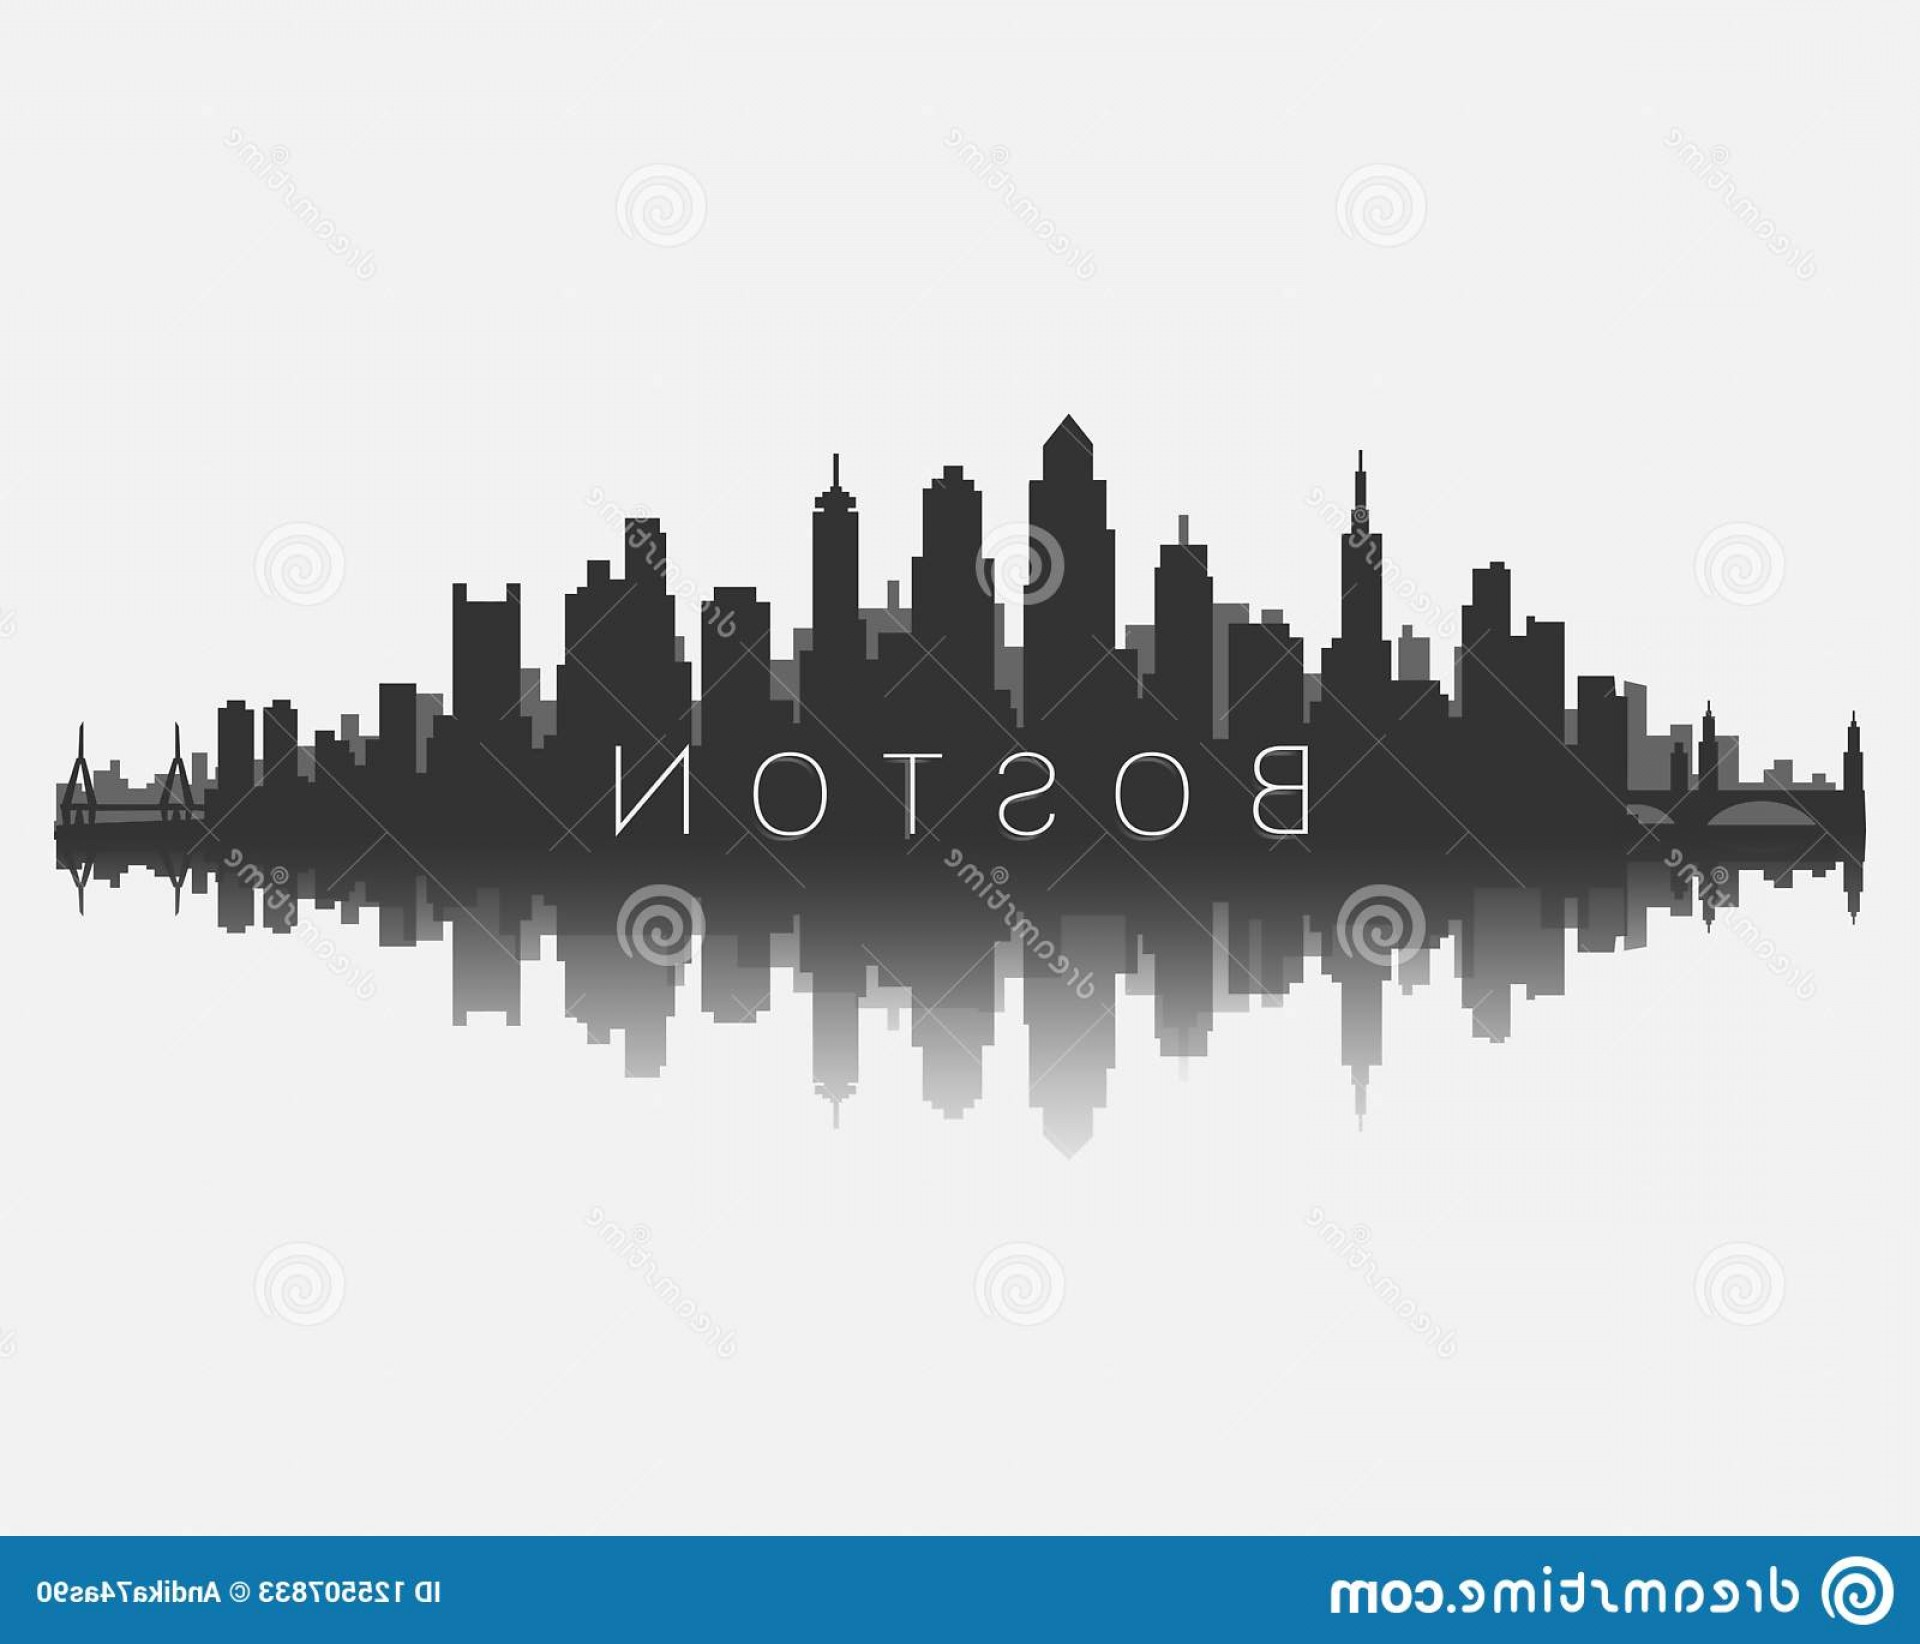 Wicked Boston Skyline Silhouette Vector: Boston City Skyline Silhouette Reflection Vector Illustration White Background Eps Image